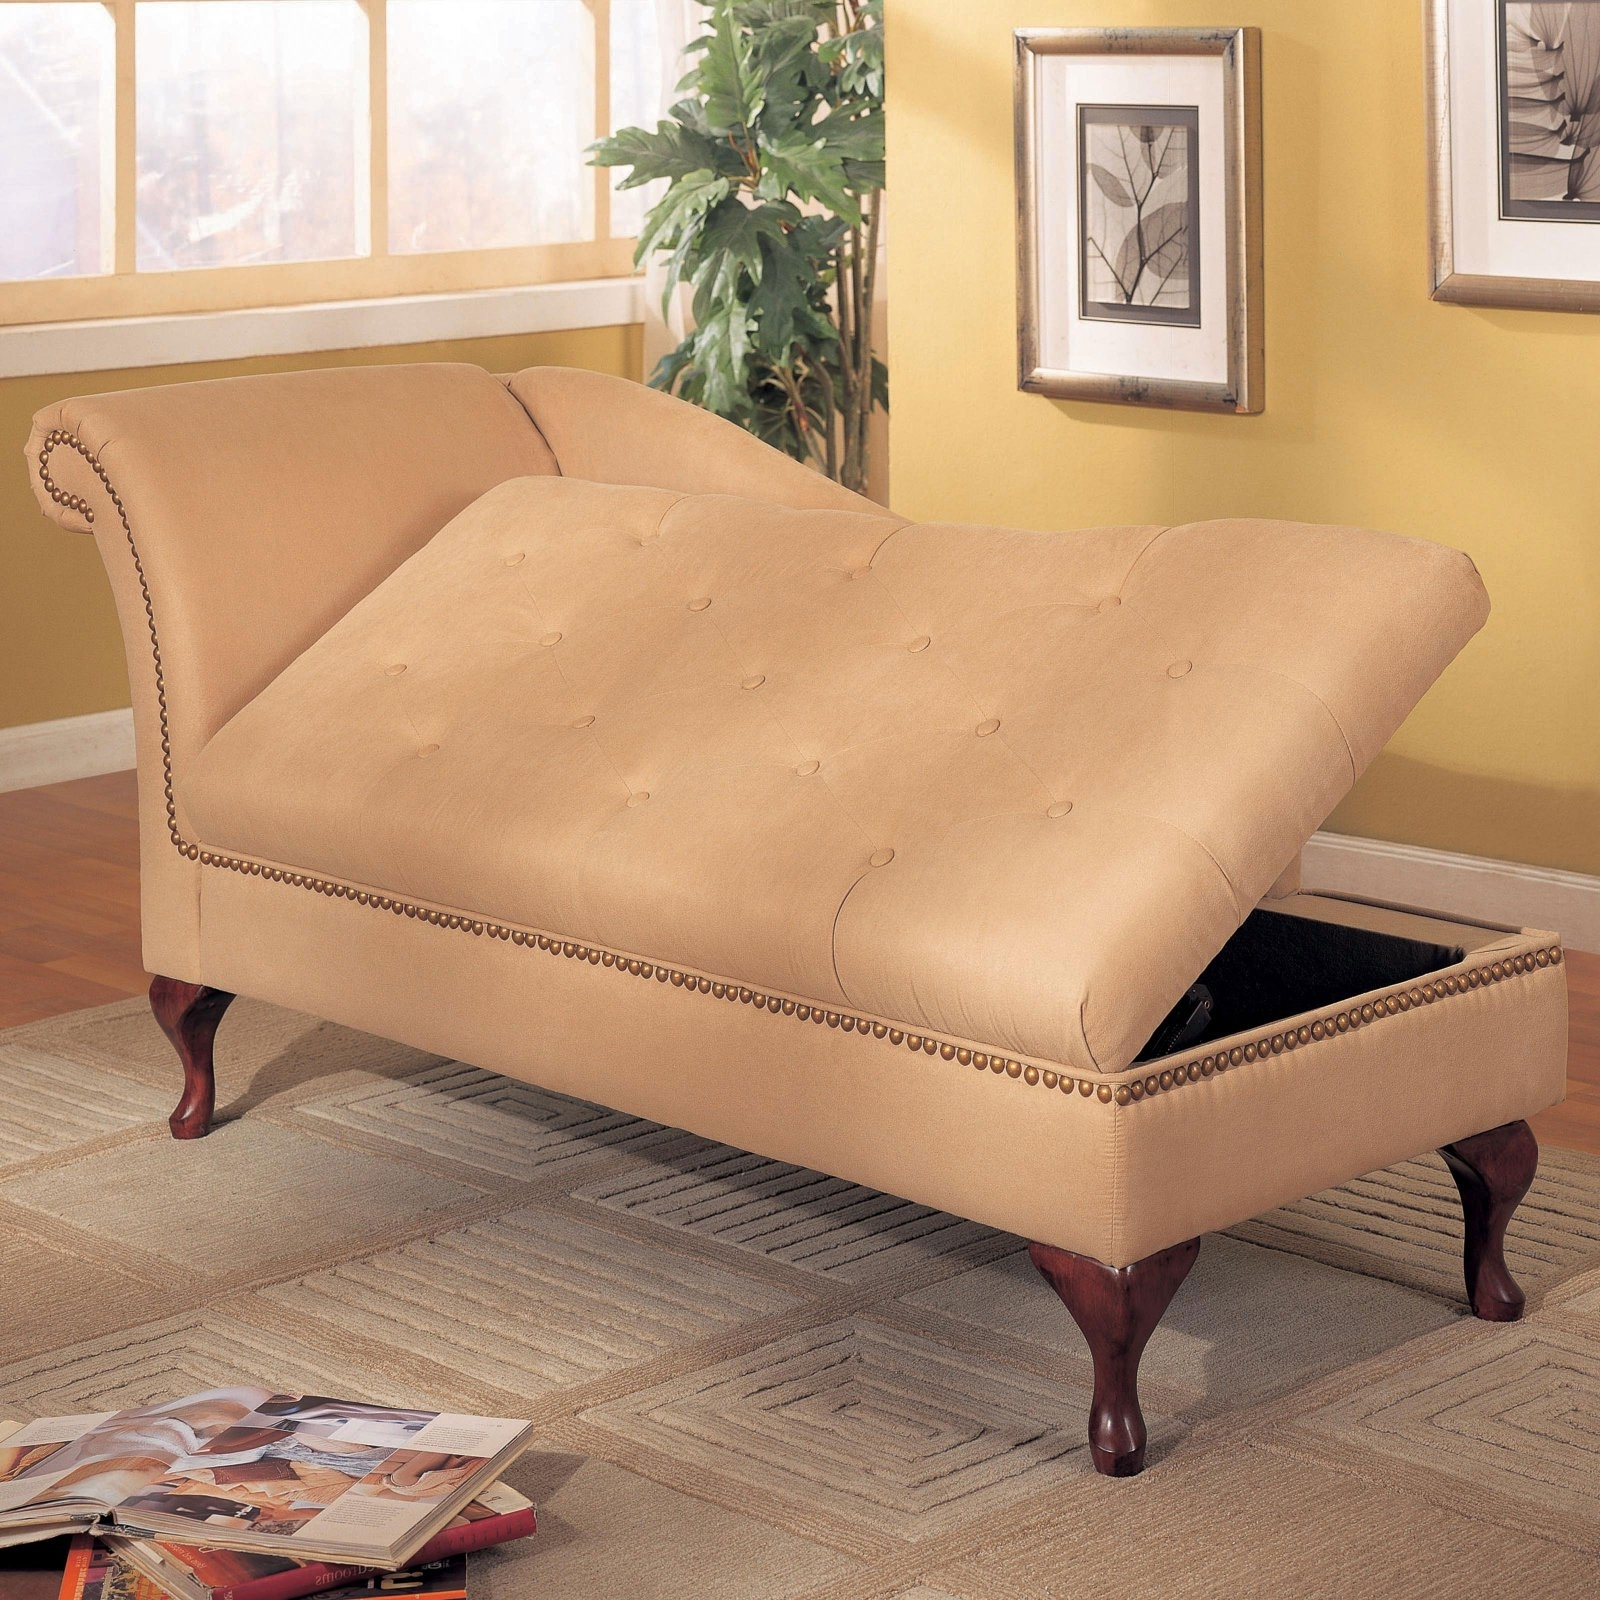 Small Chaise Lounge Chairs Within Current Small Chaise Lounge Chair For Room Awesome Bedroom Chairs Ideas (View 10 of 15)